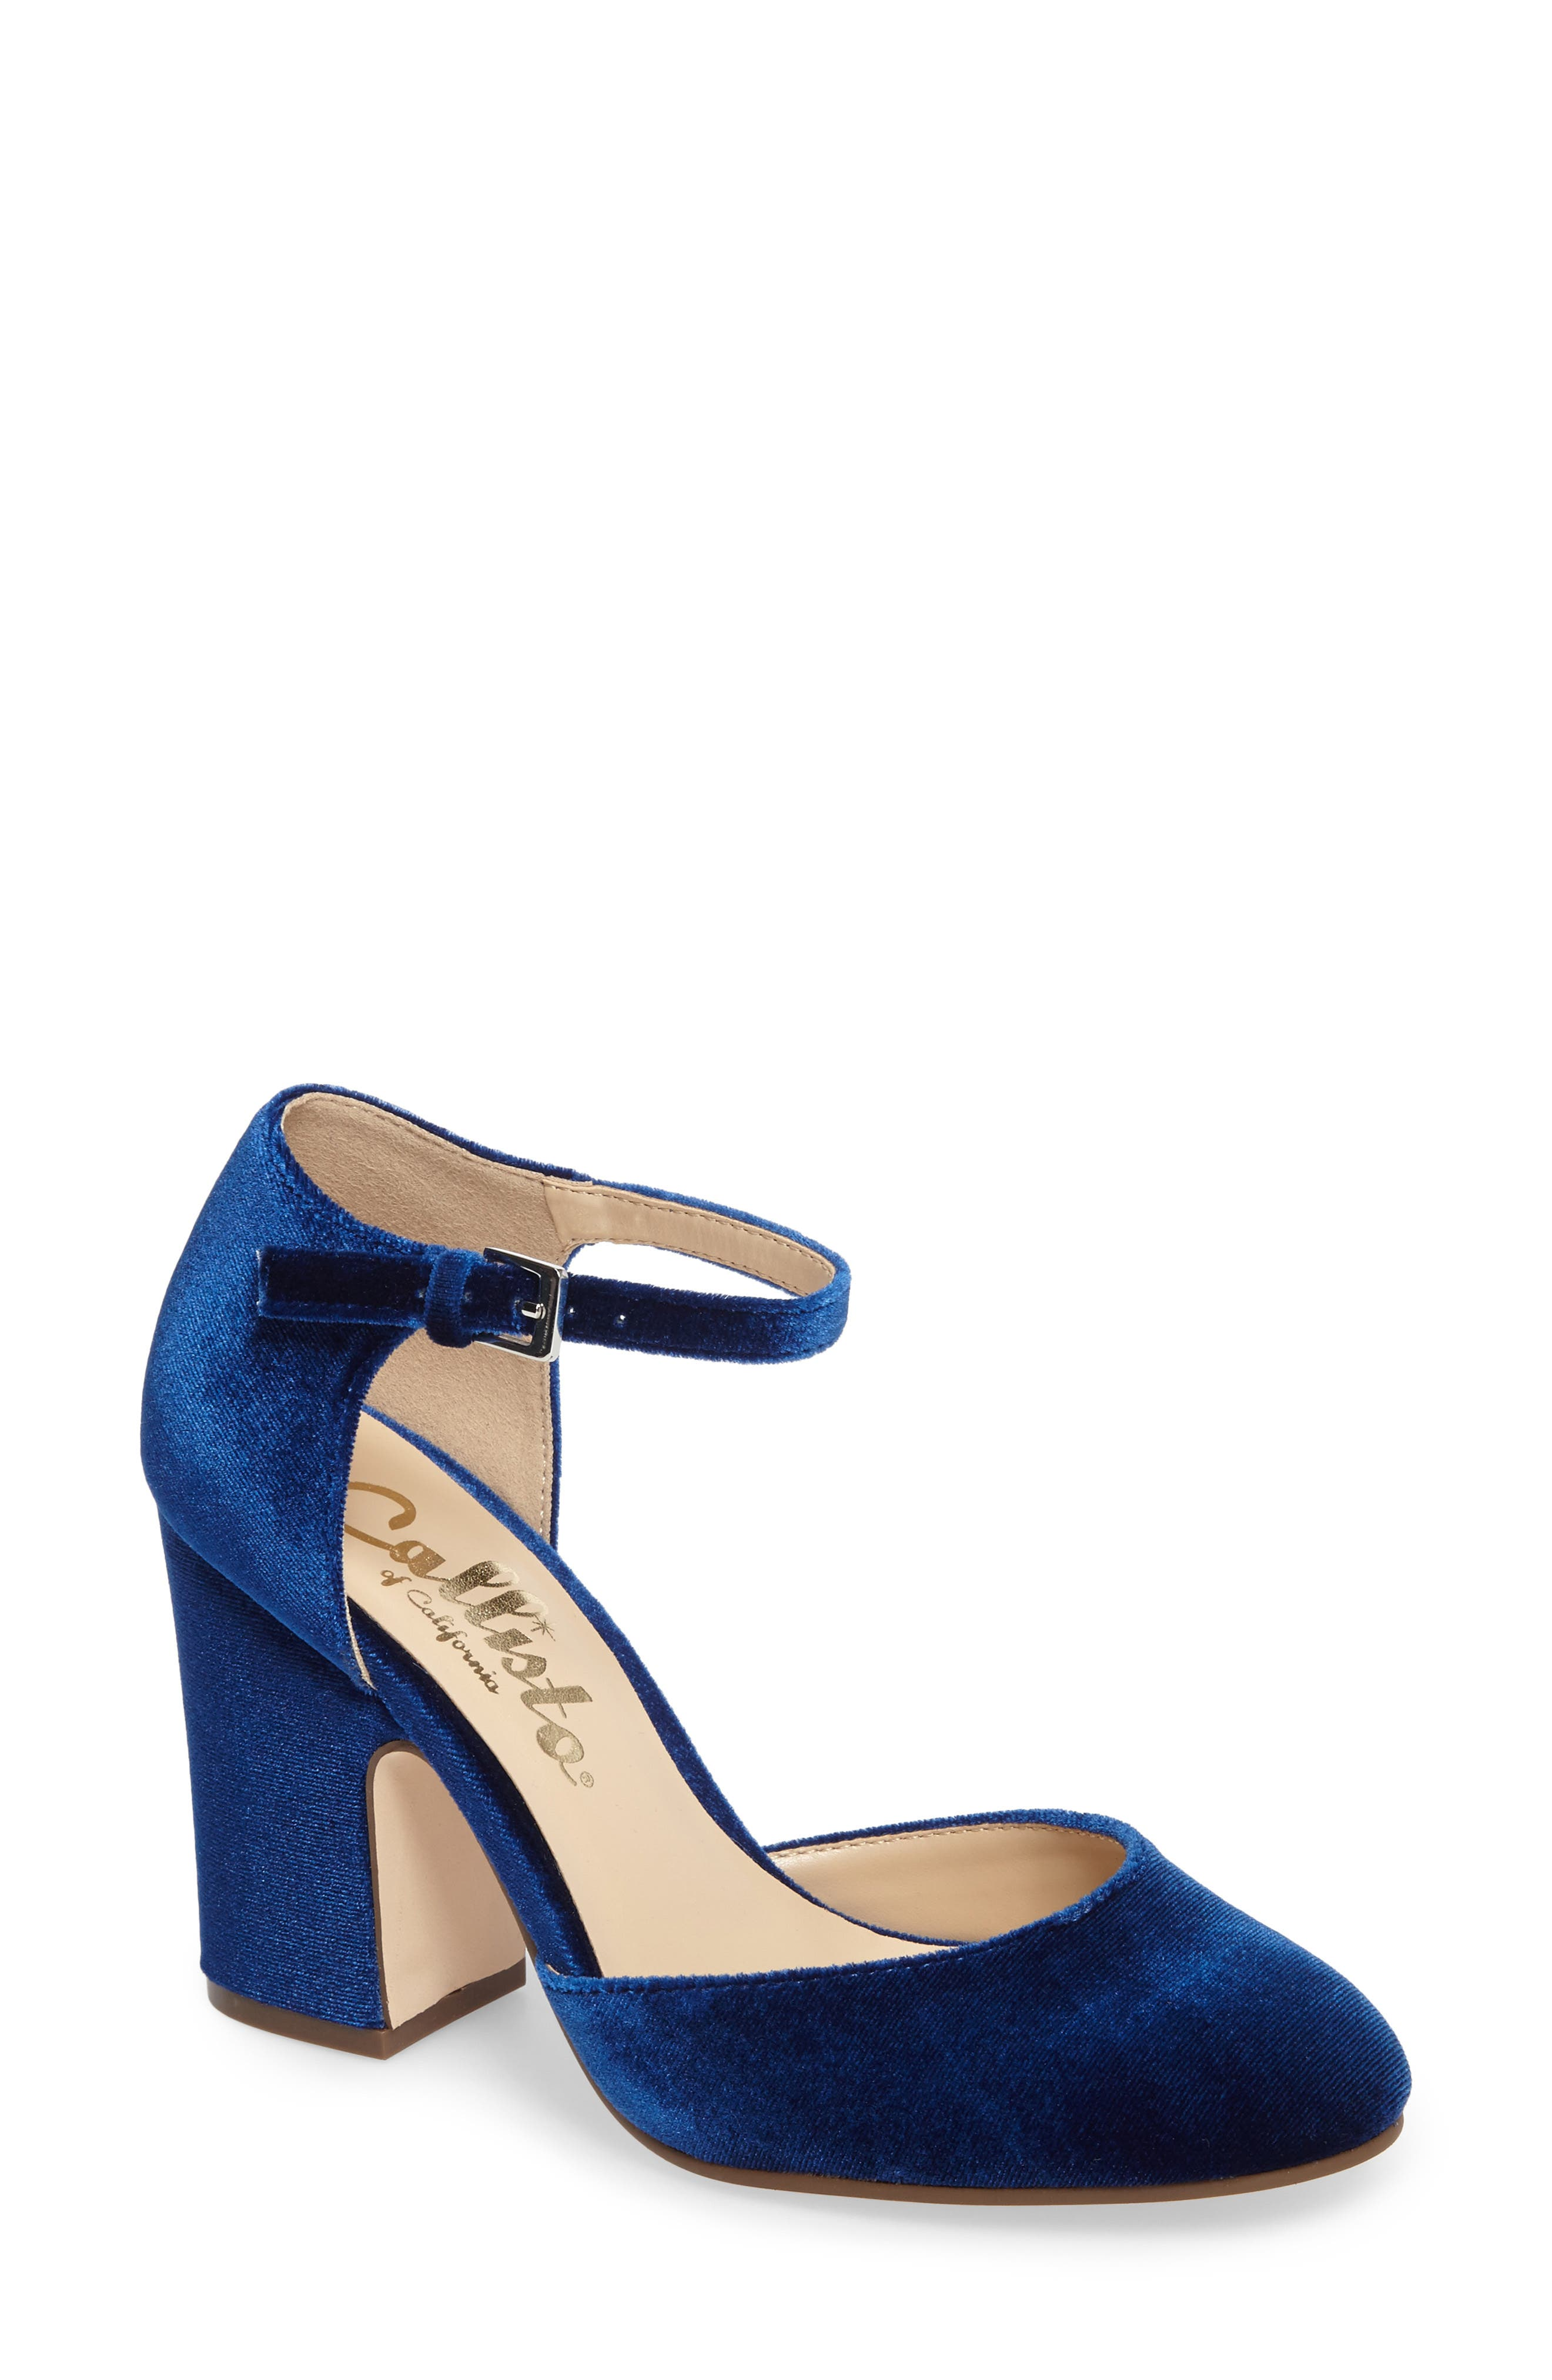 Alternate Image 1 Selected - Callisto Indeego Ankle Strap Pump (Women)